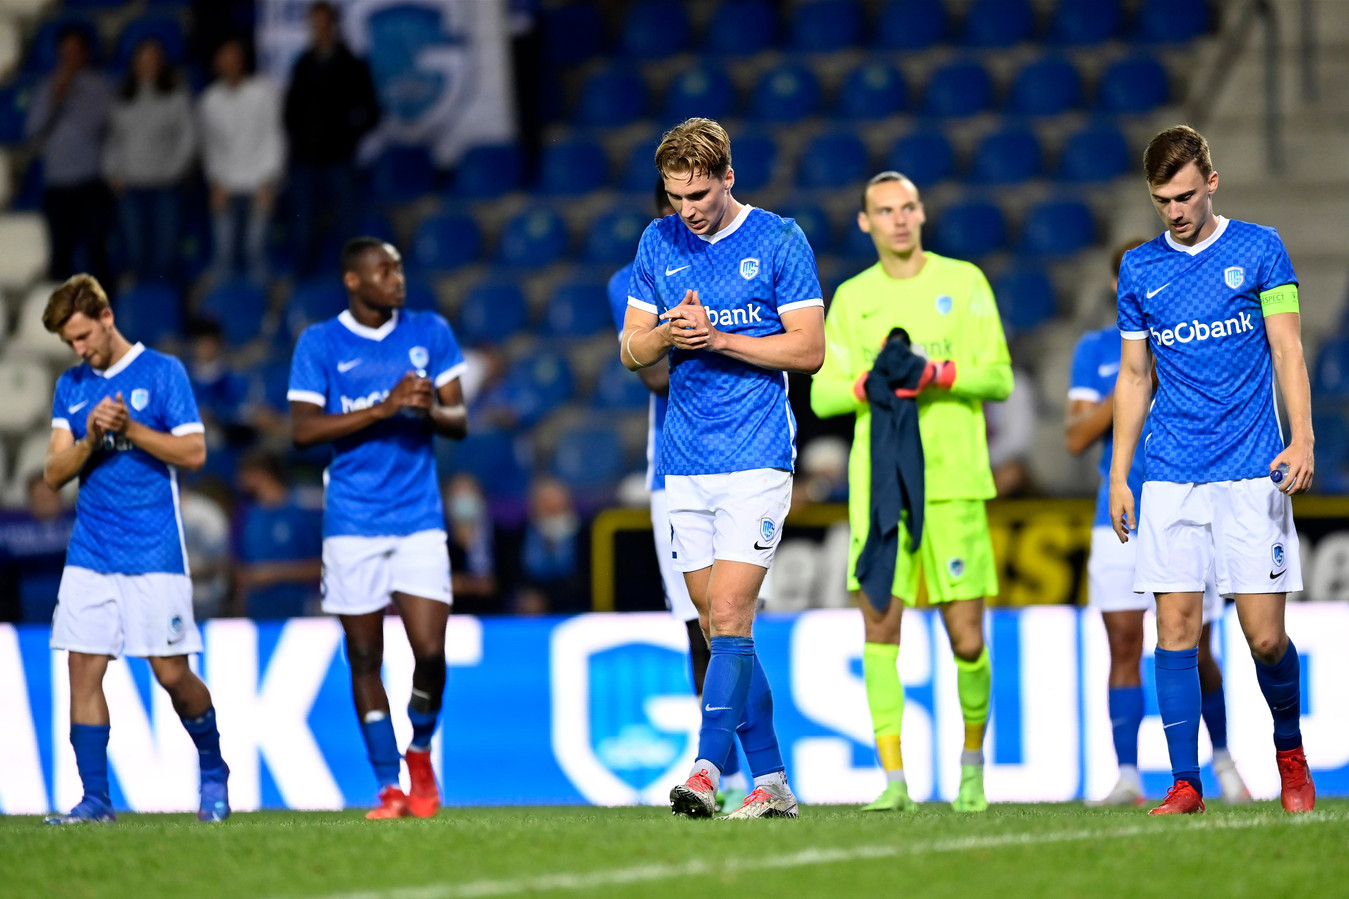 GENK, BELGIUM - AUGUST 3 : Team captain Bryan Heynen midfielder of KRC Genk and Kristian Thorstvedt midfielder of KRC Genk looking dejected on the final whistle after the defeat during the UEFA Champions League, Third qualifying round match between KRC Genk and FC Shakhtar Donetsk at the KRC Genk Arena stadium on August 03, 2021 in Genk, Belgium, 3/08/2021 ( Photo by Nico Vereecken / Photo News